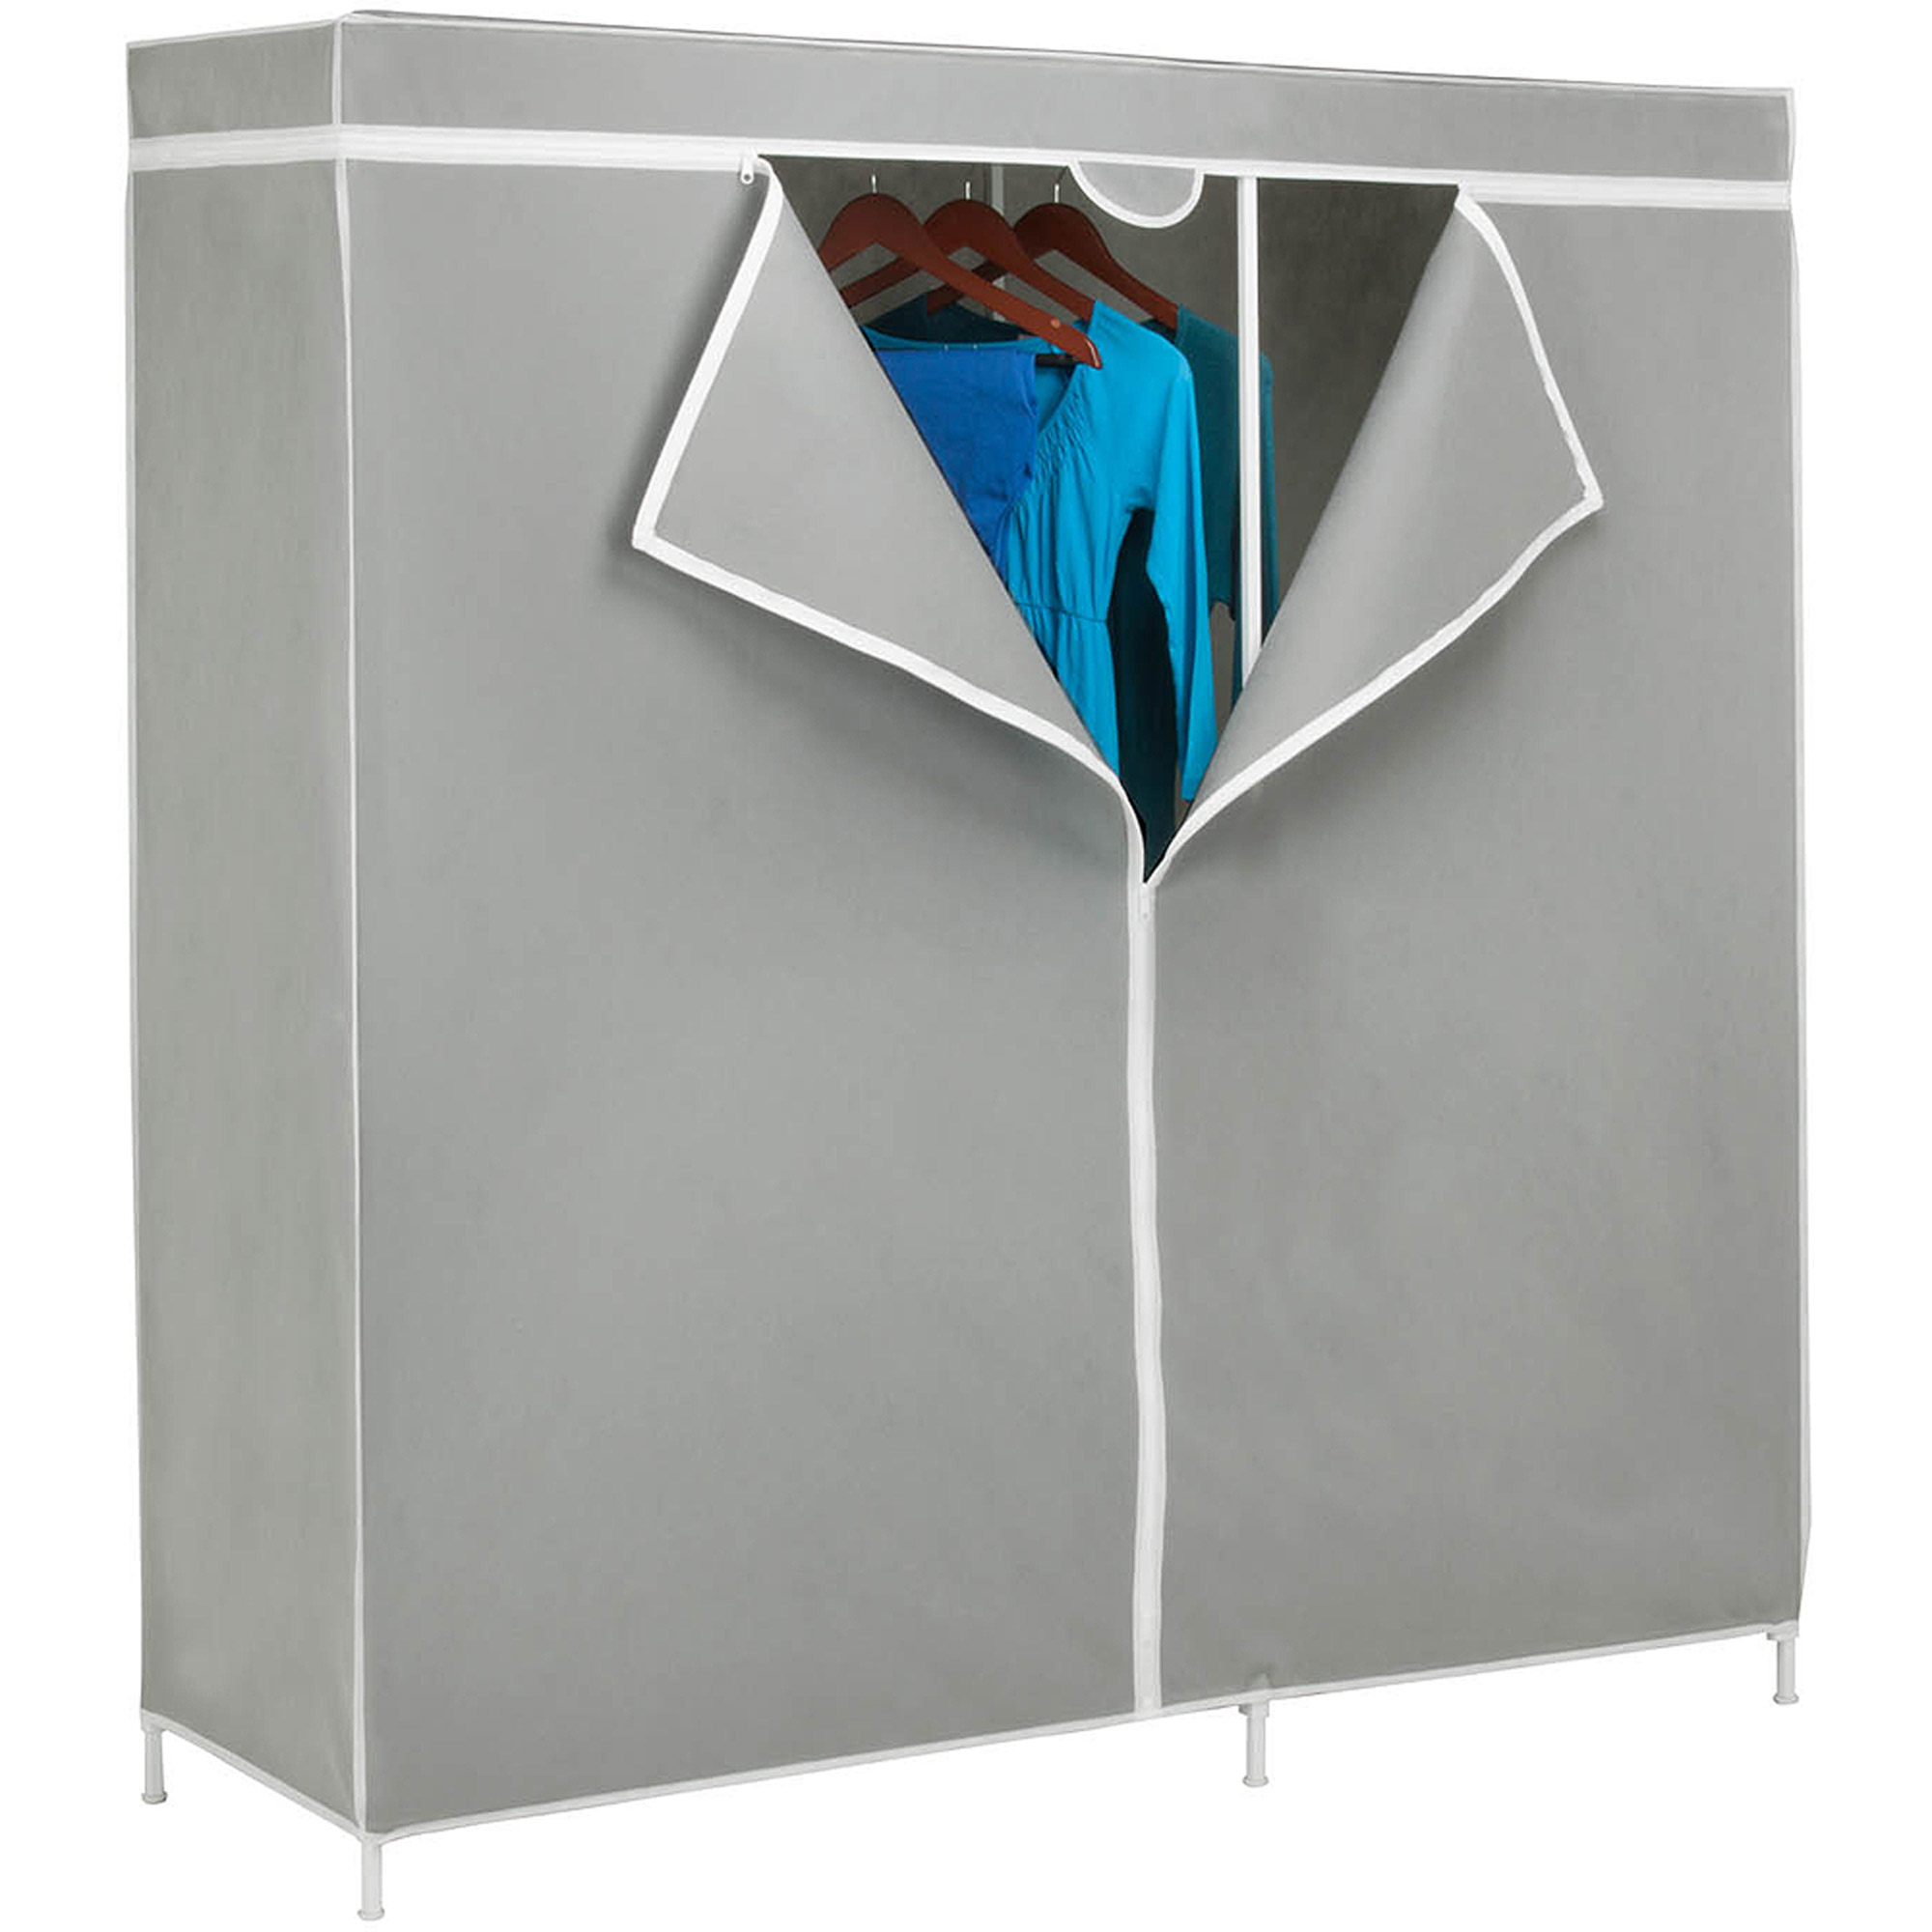 "Honey-Can-Do 60"" Steel Frame Wardrobe Closet System"